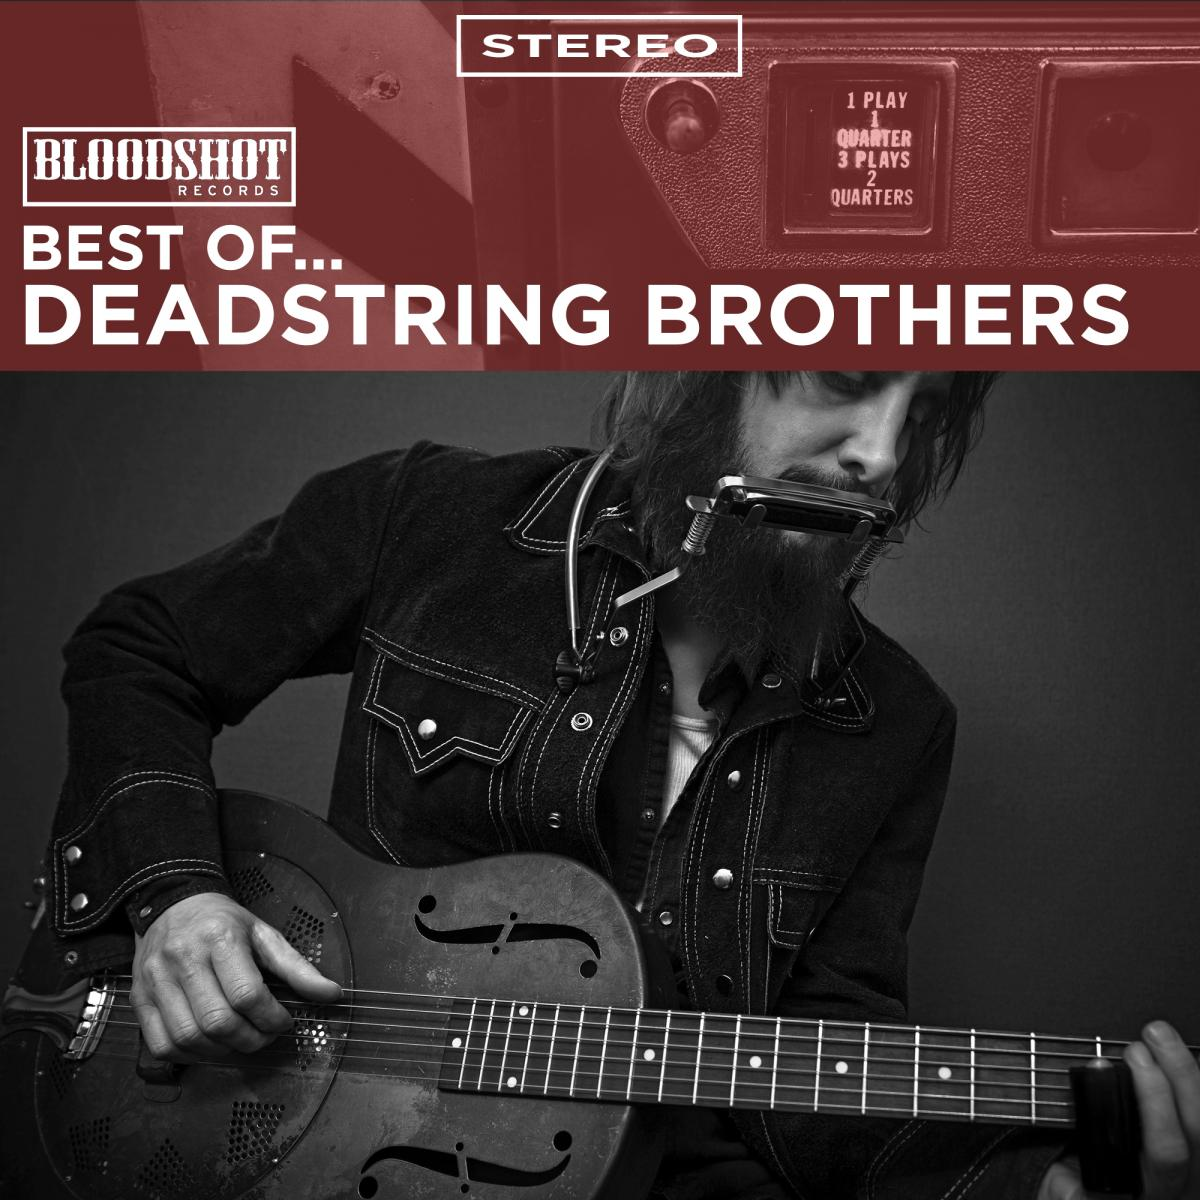 Best of Deadstring Brothers Bloodshot Records